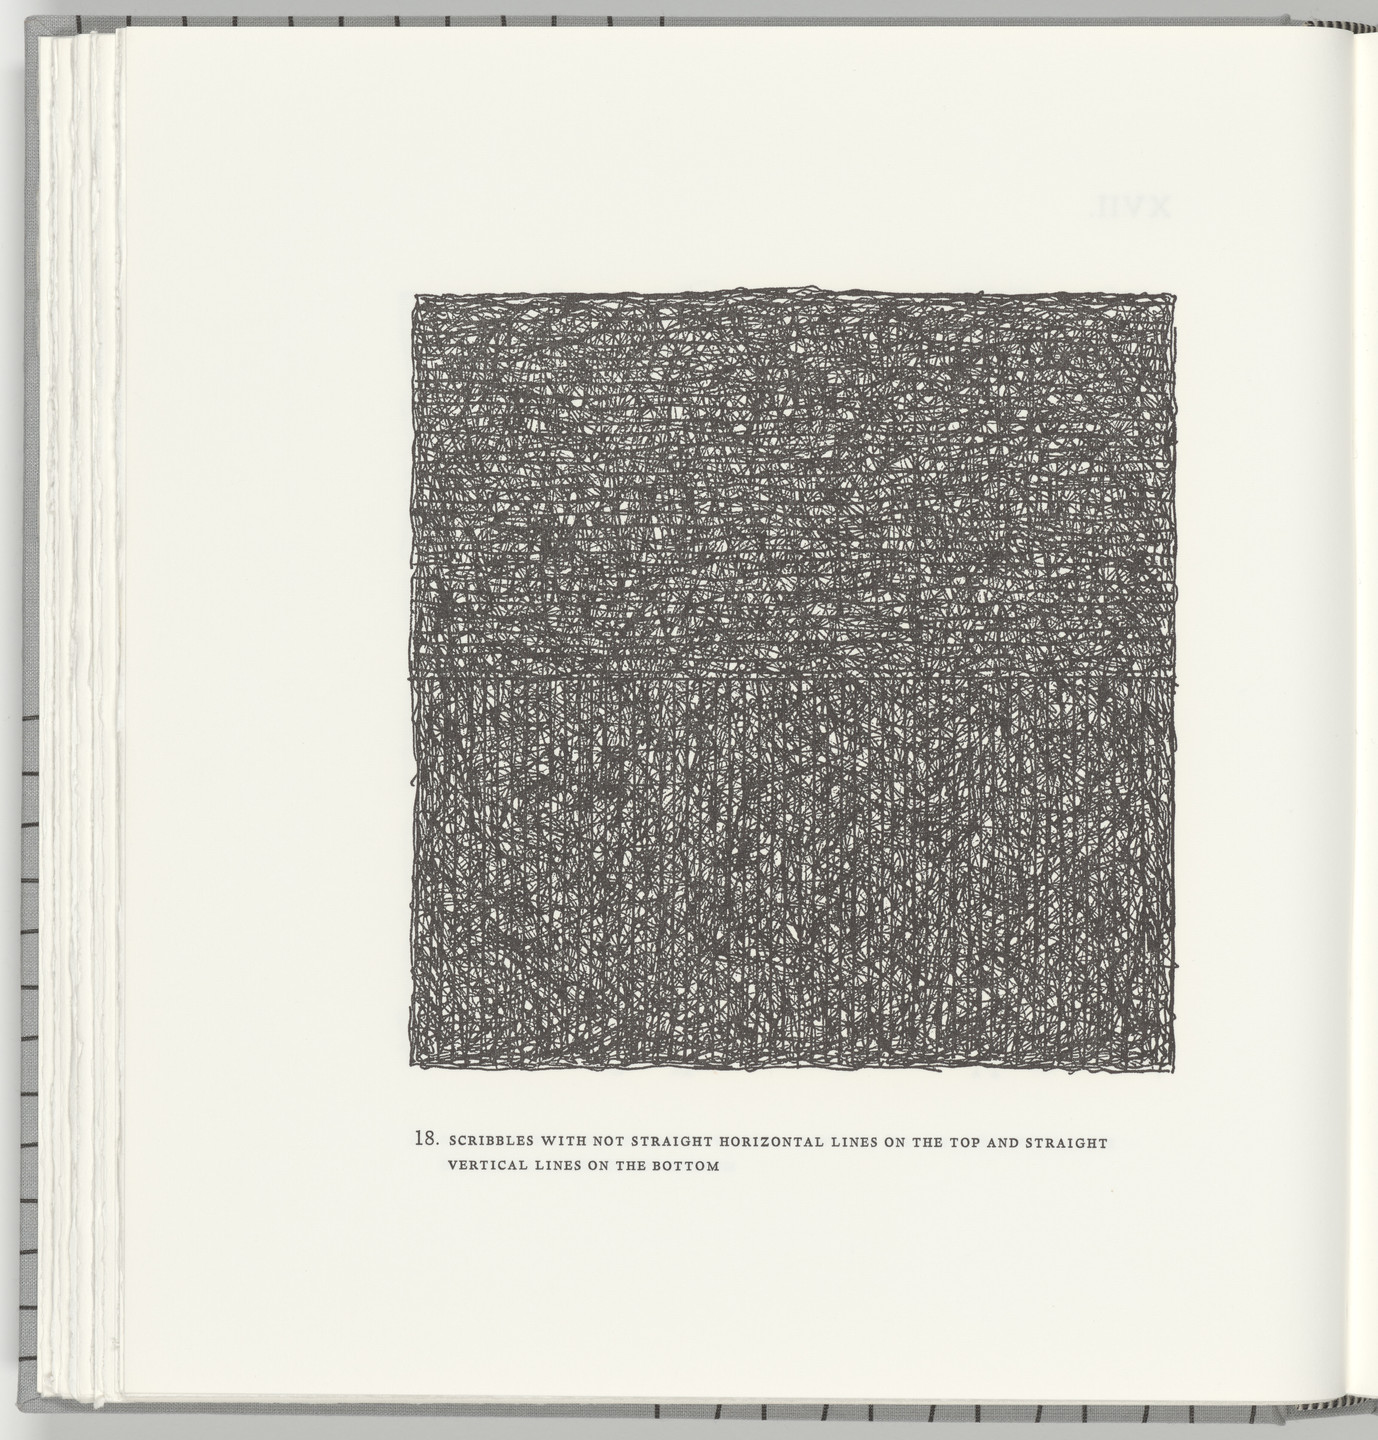 Sol LeWitt. Scribbles with Not Straight Horizontal Lines on the Top and Straight Vertical Lines on the Bottom (plate 18) from Squarings. 2003